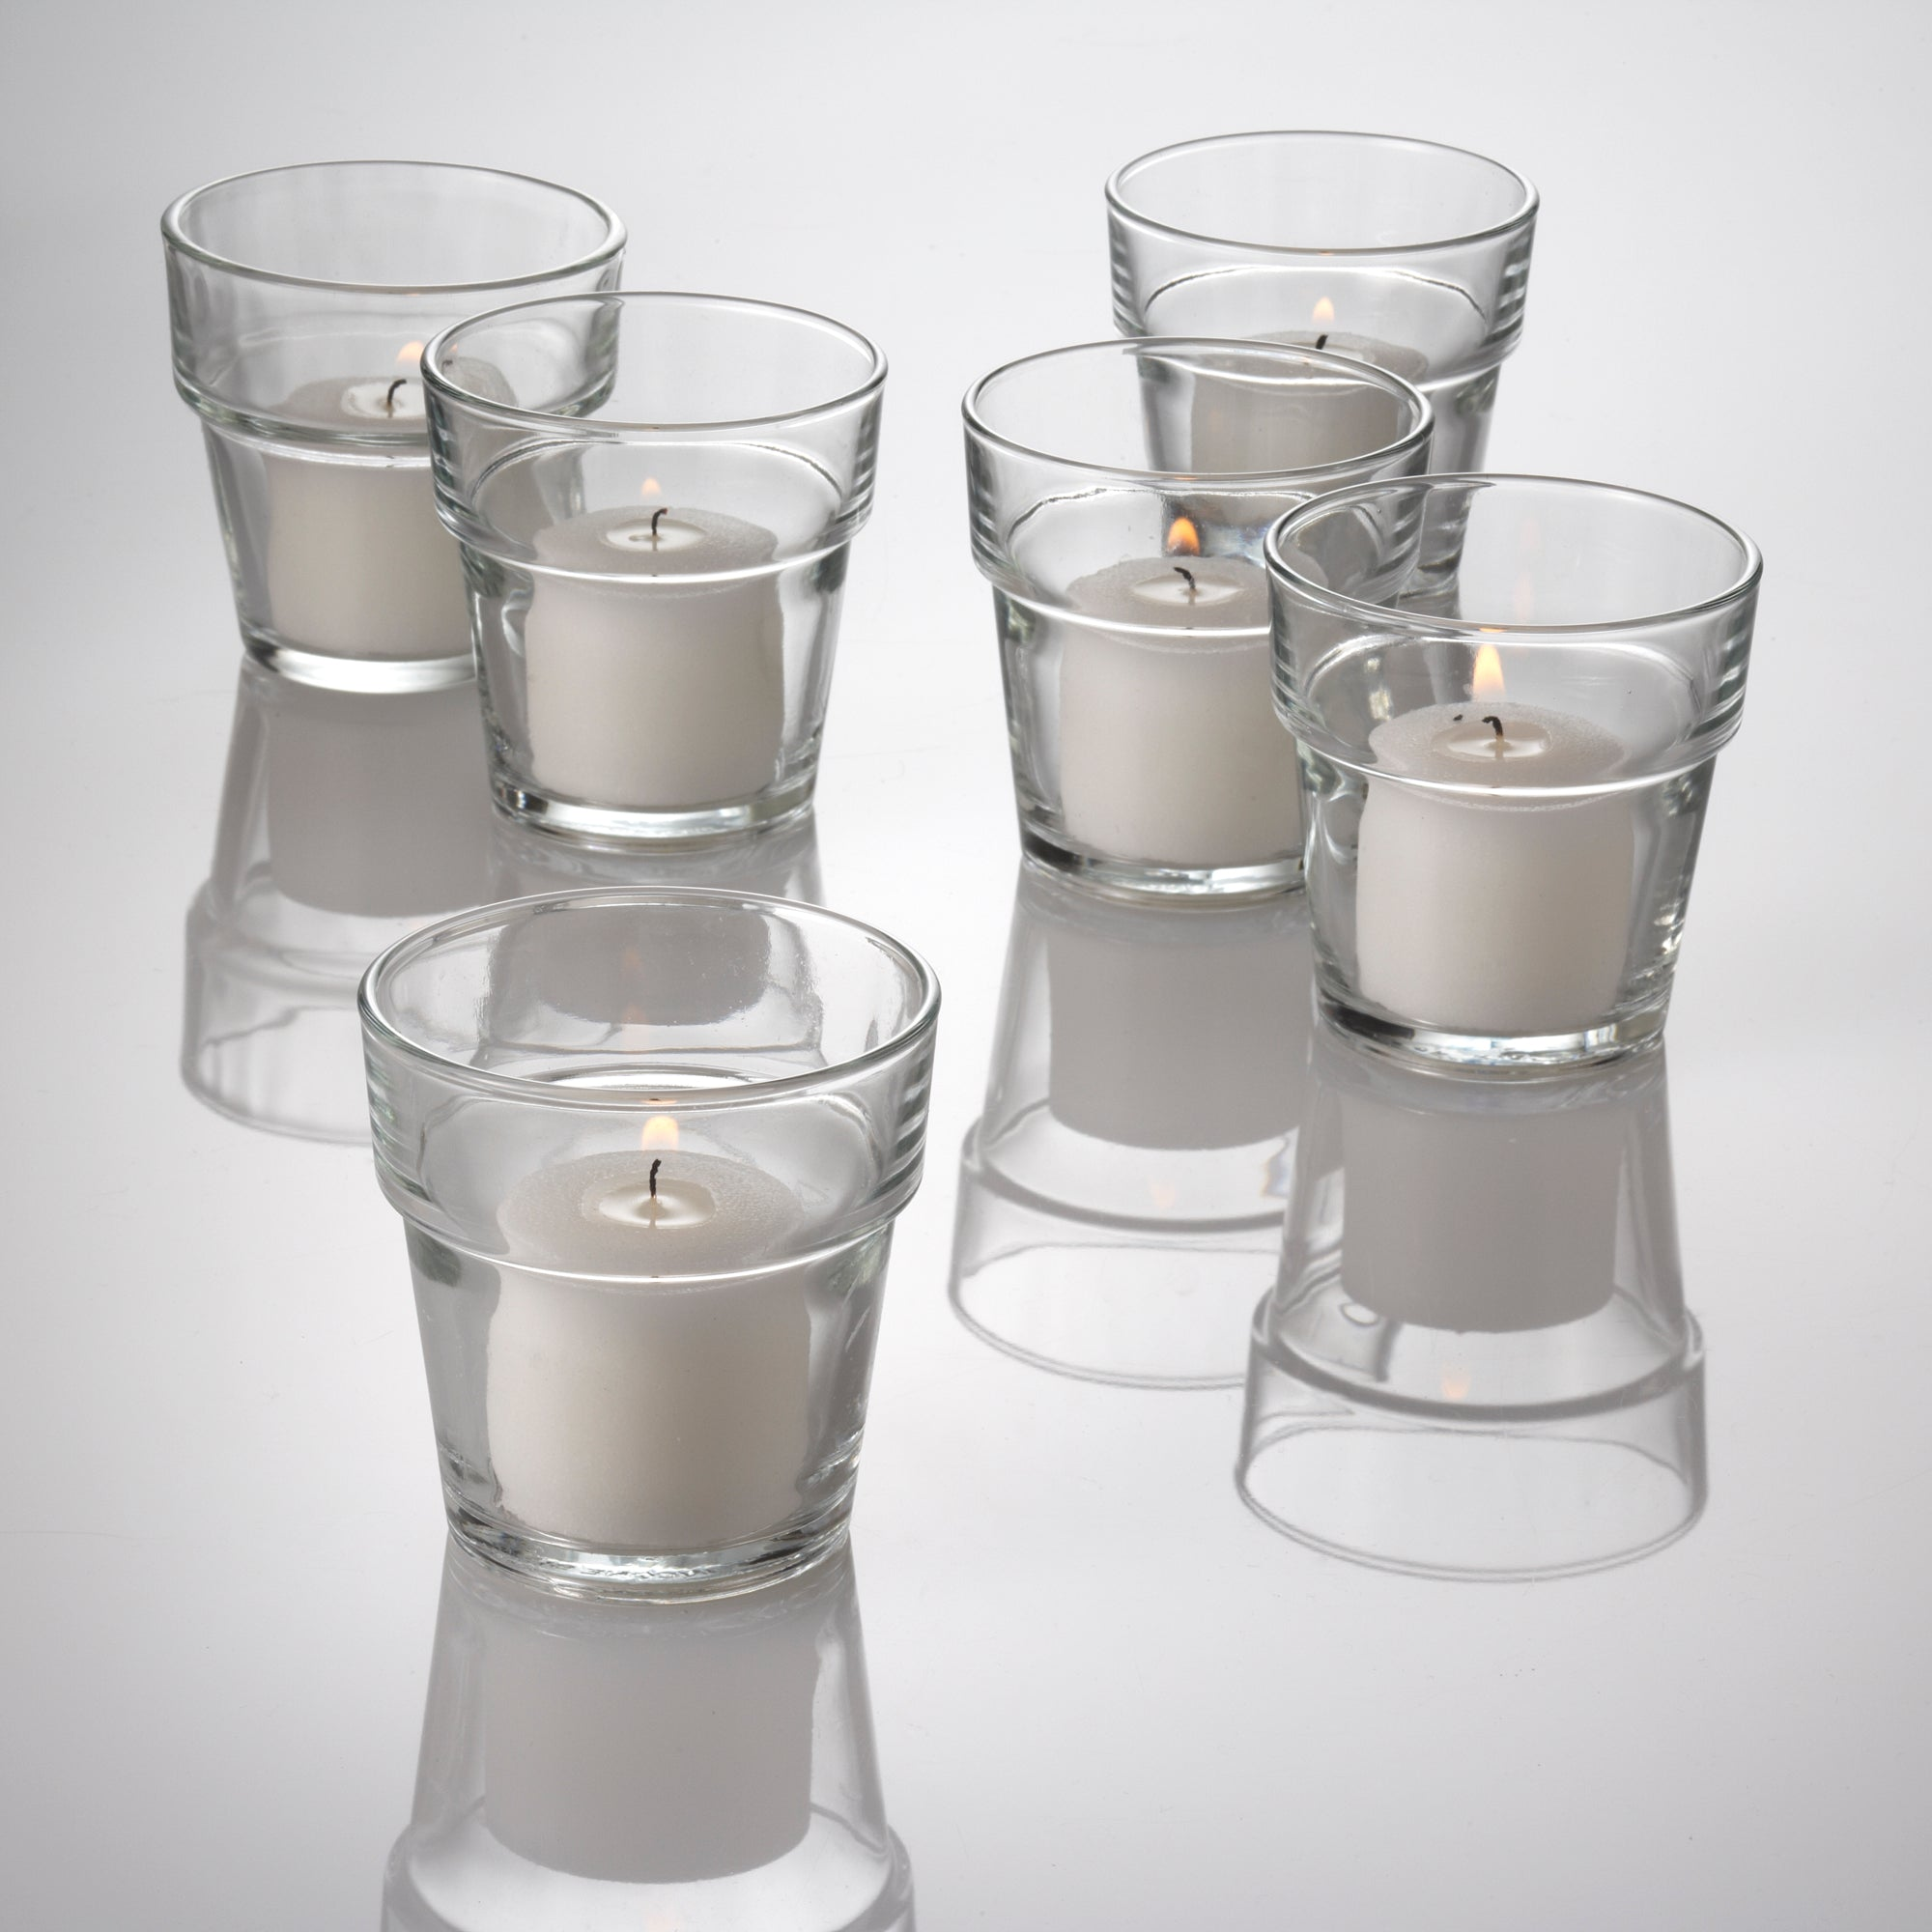 Votive Candle Holders Save On Crafts